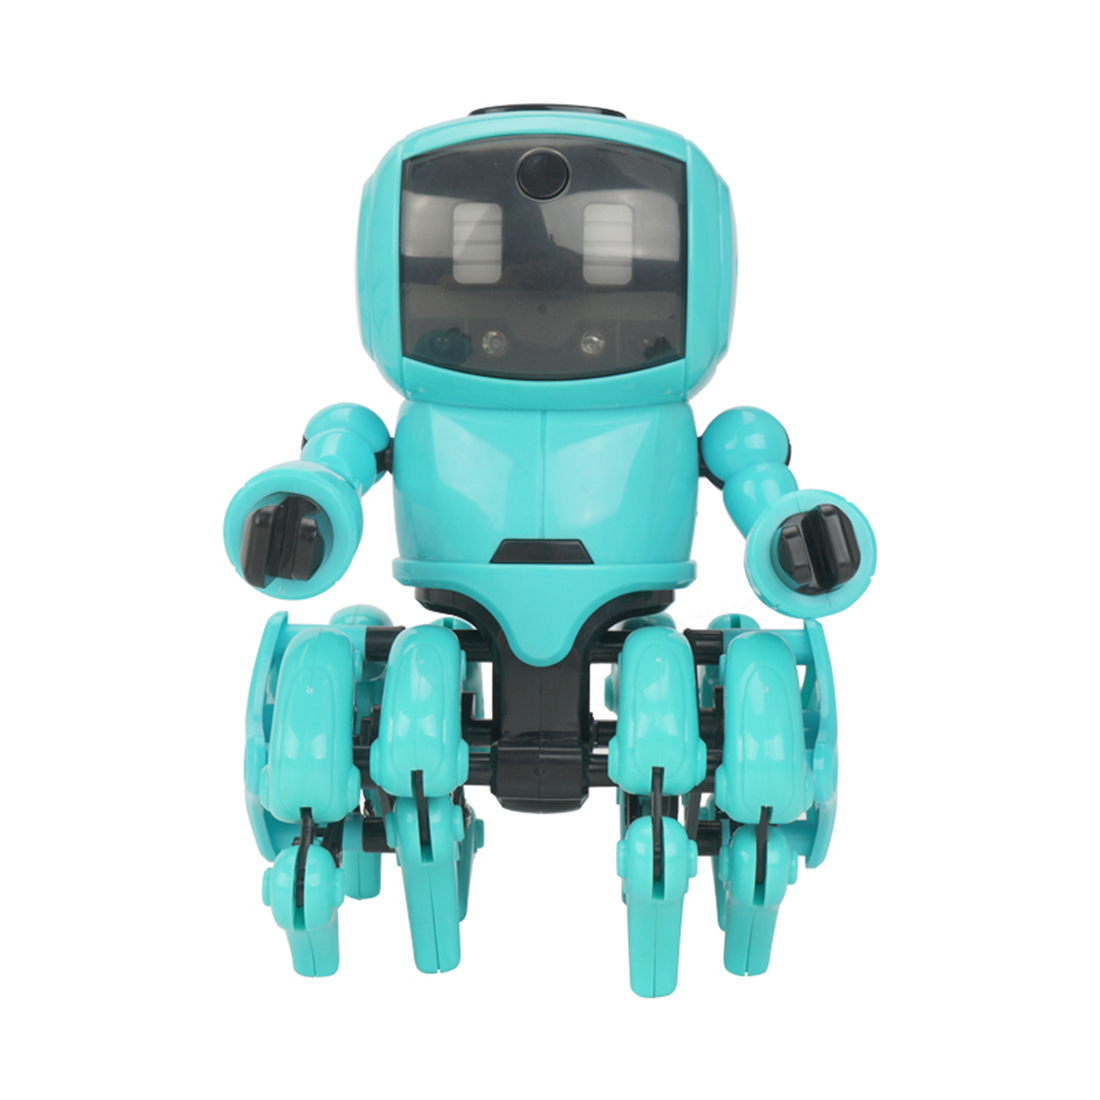 New Hot DIY Little Eight Robot Assembly Smart Follow Robot Infrared Obstacle Avoidance Gesture Sensing Toy